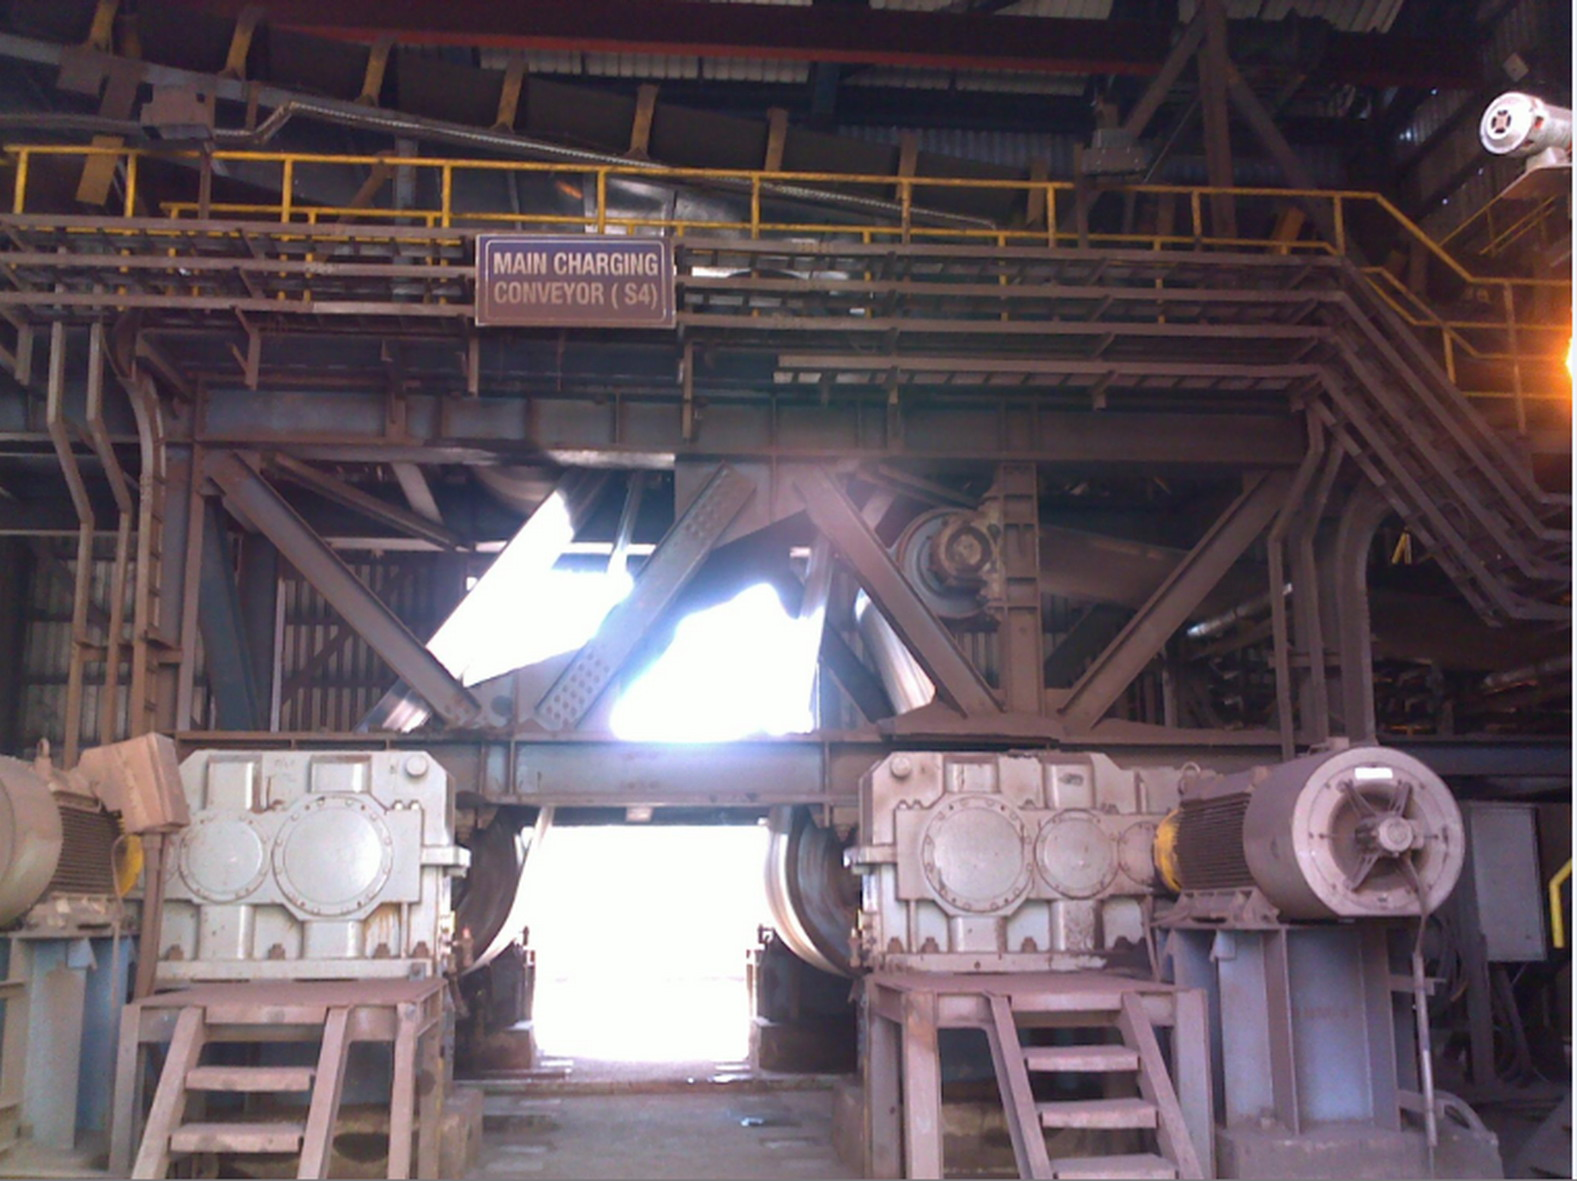 Fig. 3: The conveyor belt transports the iron ore to the furnace. However, the belt was wandering from one side to the other during operation. This resulted in uneven wear. In addition, the material could fall off the belt onto the floor at the transfer and transition points.